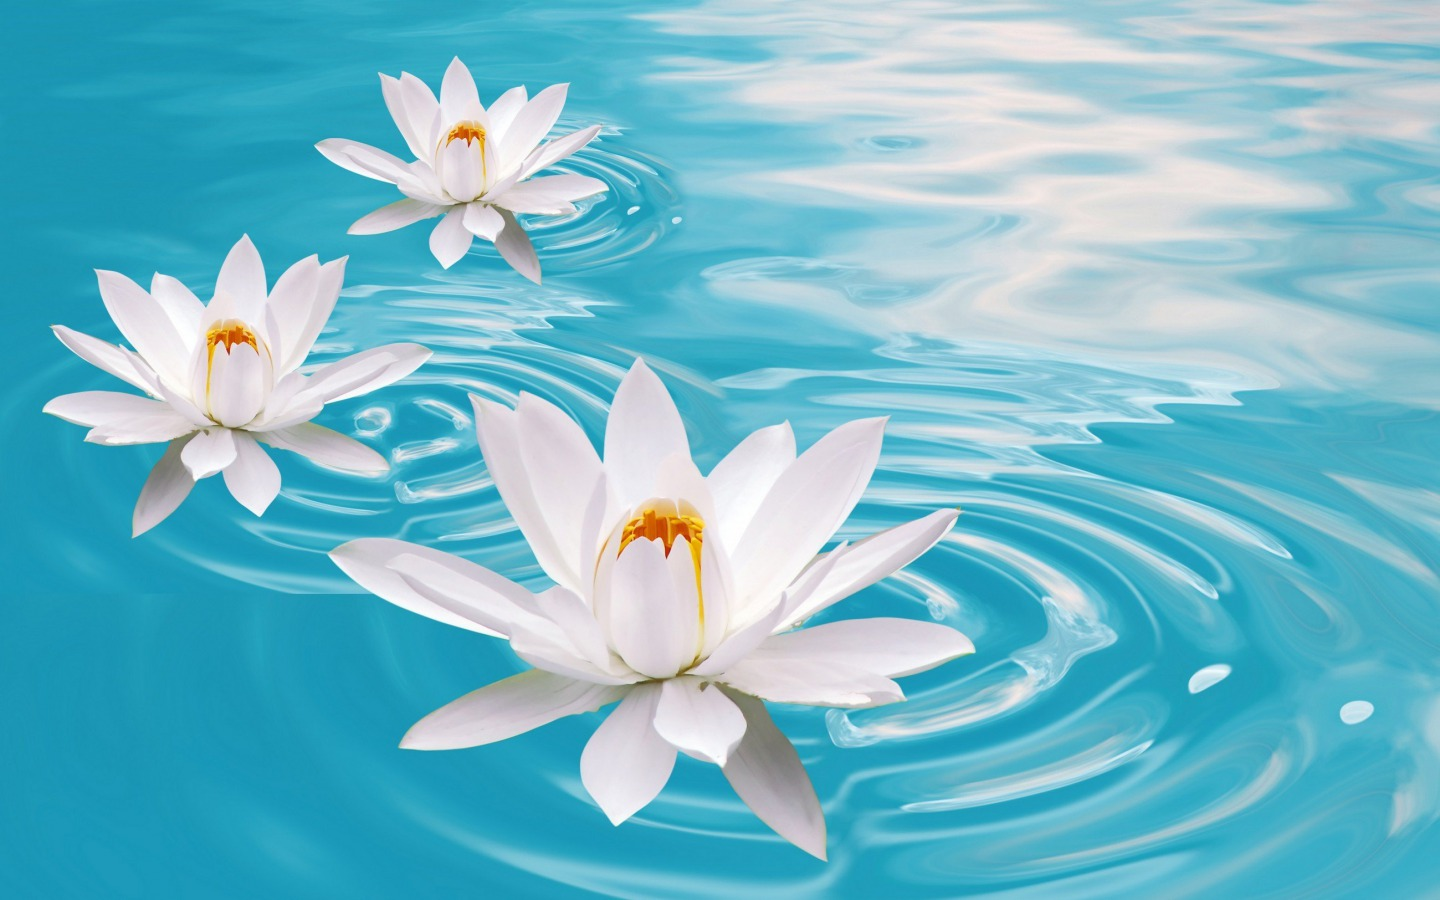 Flowers images Water Lilies HD wallpaper and background photos